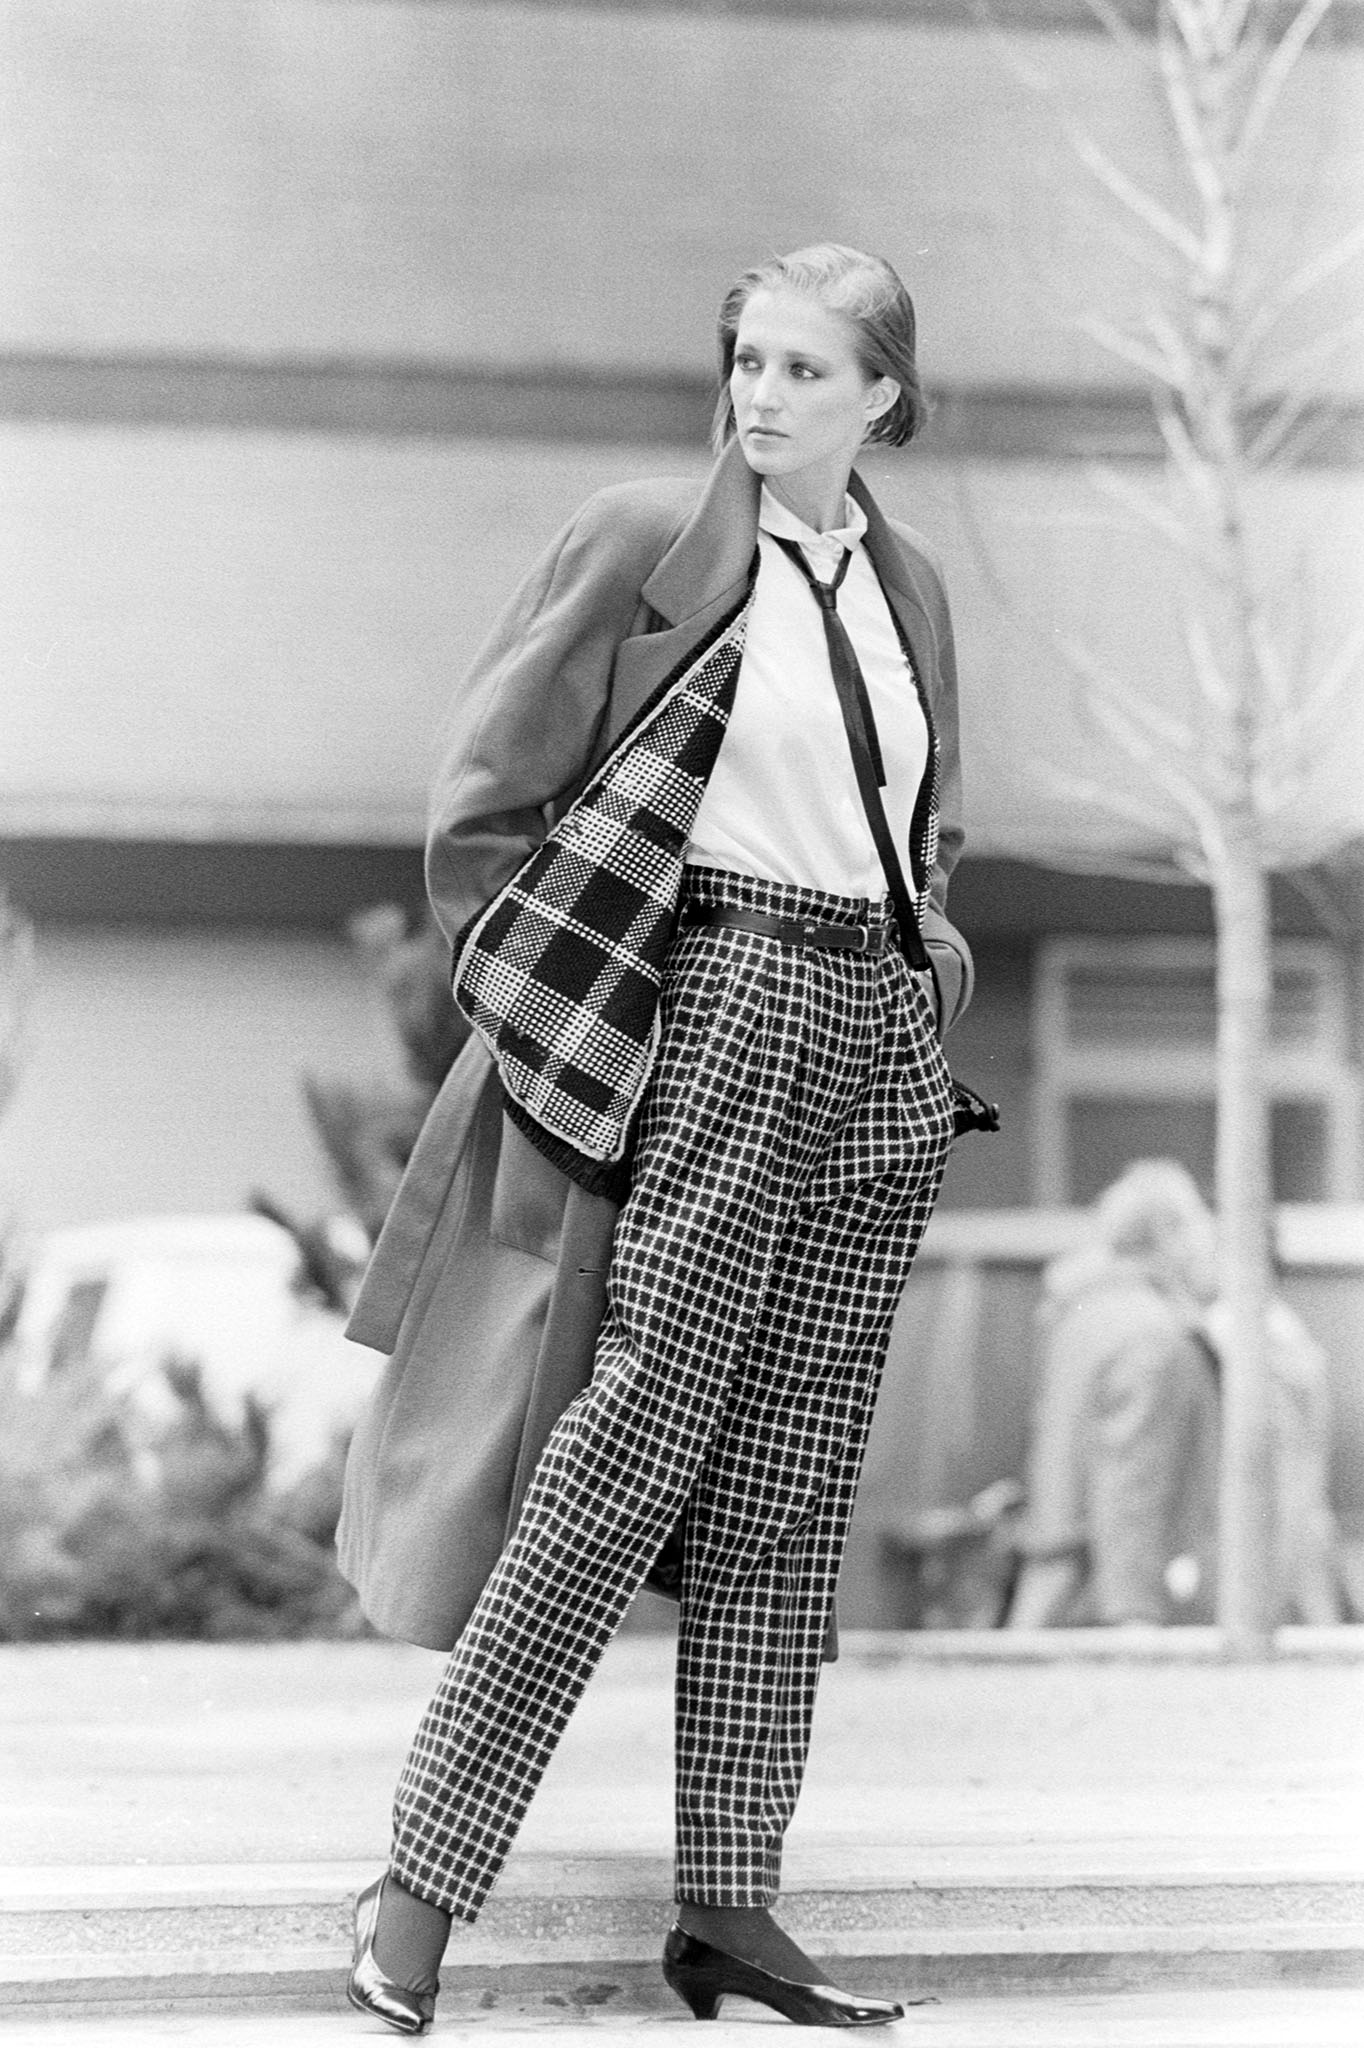 Spitalnick Fall 1984 Sportswear Collection Advance; Model Catherine Timmer